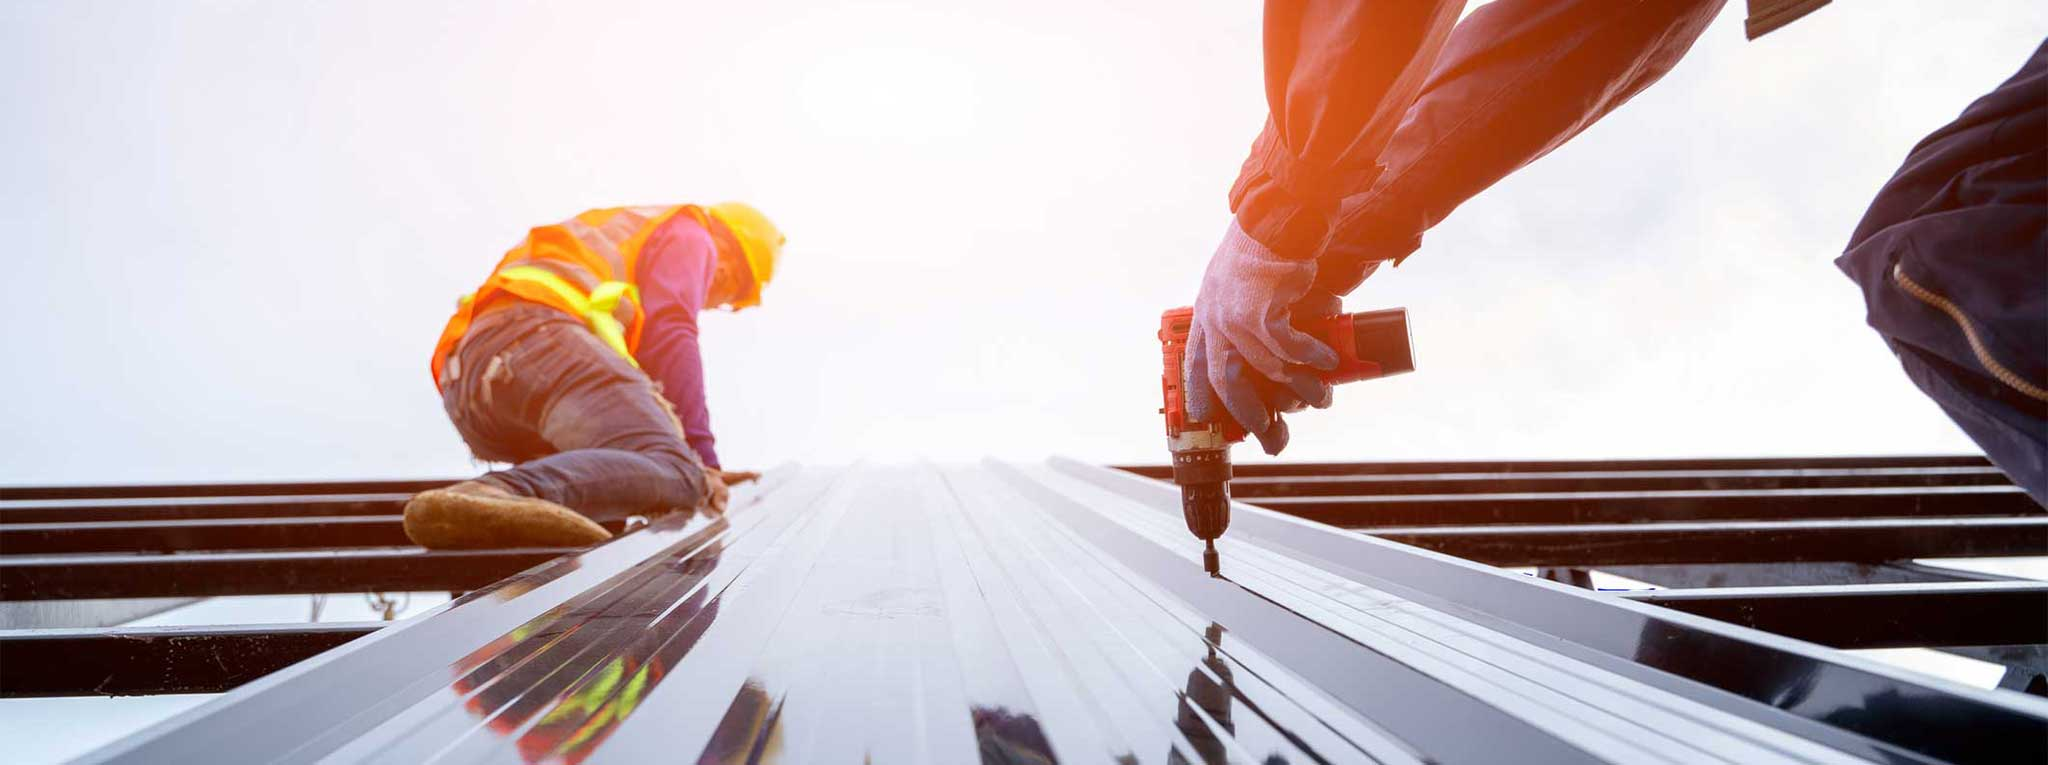 Dedicated Roofing & Exteriors - Professional Roofing Calgary Roof Repair Roof Replacement Metal Roofing